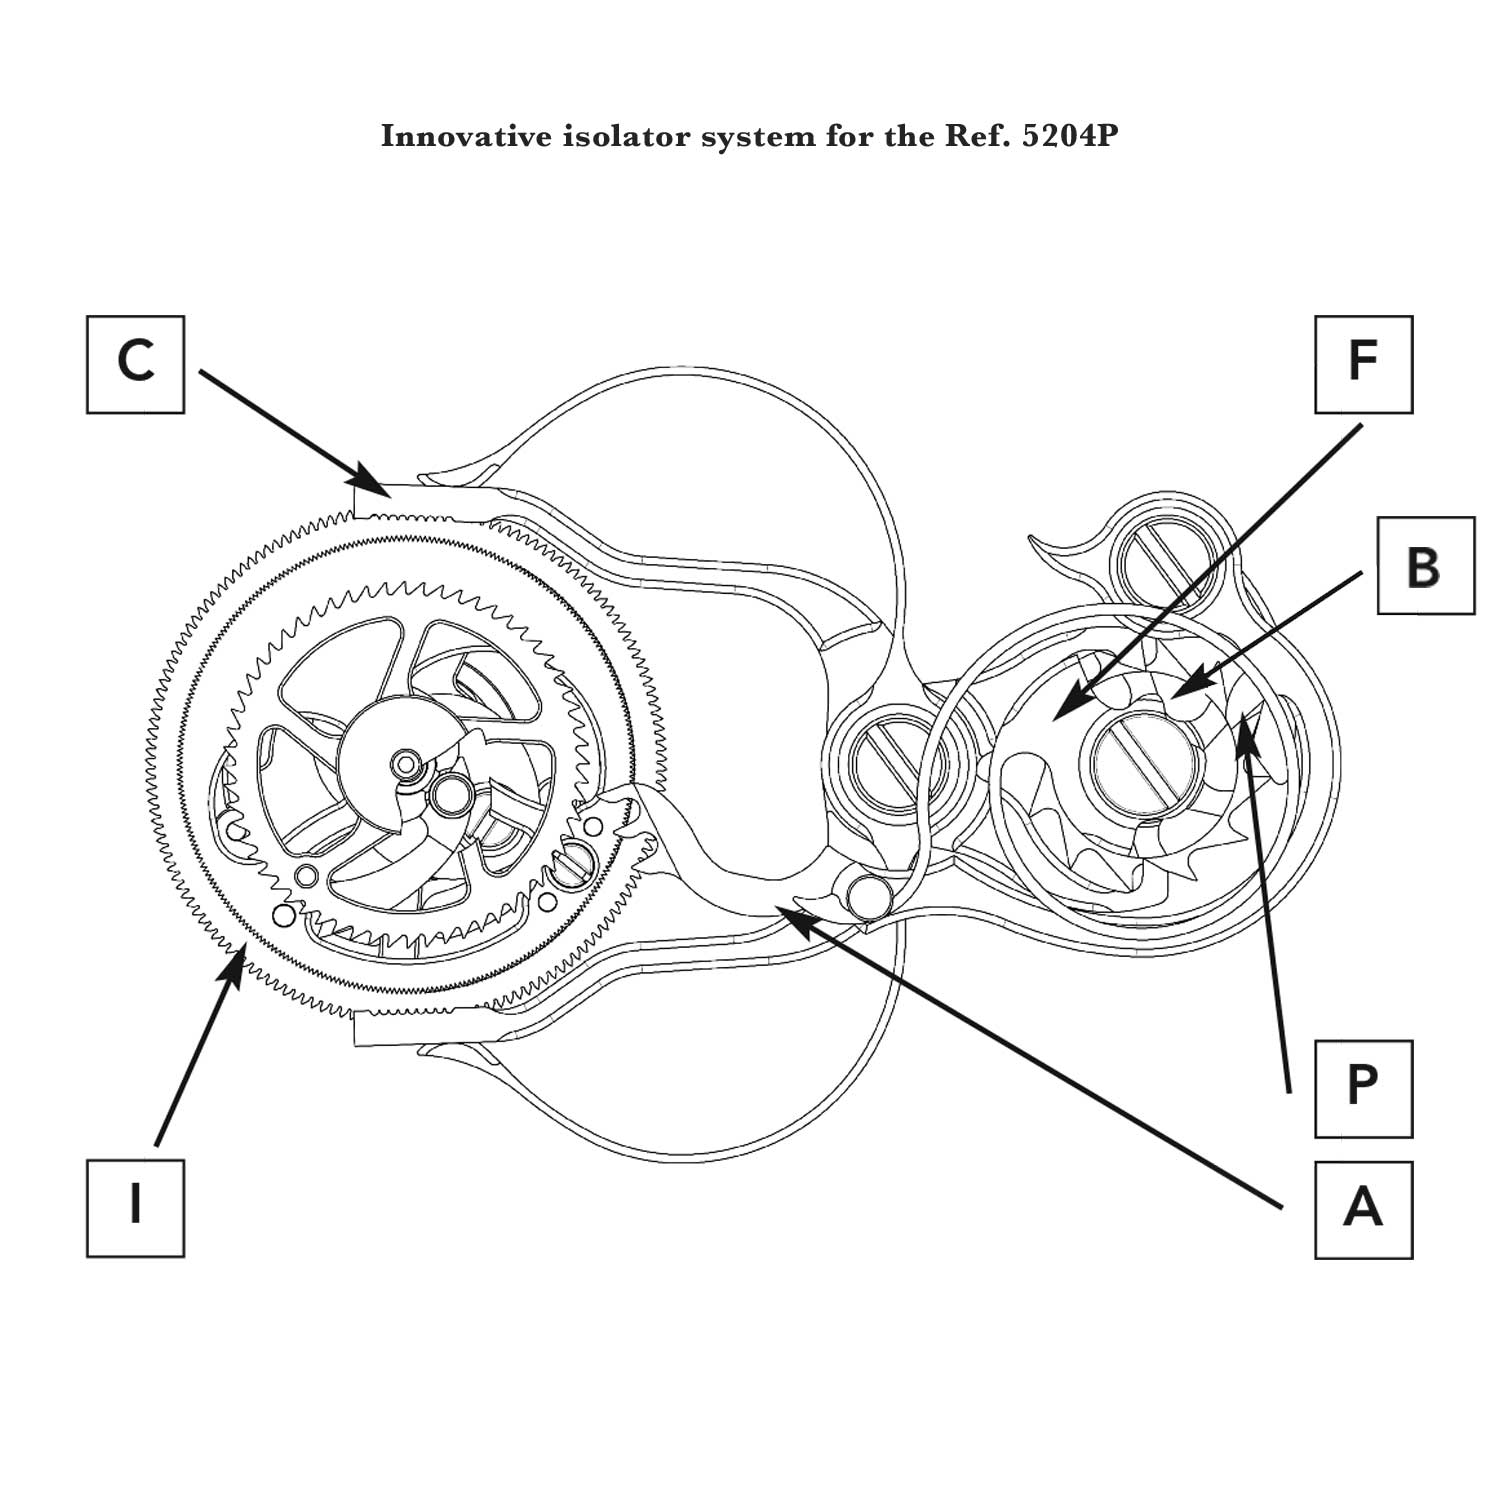 The unique Patek Philippe design is based on an isolator (A) controlled by the split-seconds column wheel (B). As soon as the split-seconds clamp (C) closes, the beak (P) of the isolator falls between two columns and with its teeth advances isolator wheel (D) that uncouples split-seconds lever. When the splitseconds clamp is opened again, the beak (P) of the isolator is lifted onto a column; its teeth turn the isolator wheel in the opposite direction and the split-seconds lever is released again. The swan's neck cap of the column wheel doubles as a spring (F) that constantly presses the isolator (A) against the split-seconds column wheel.